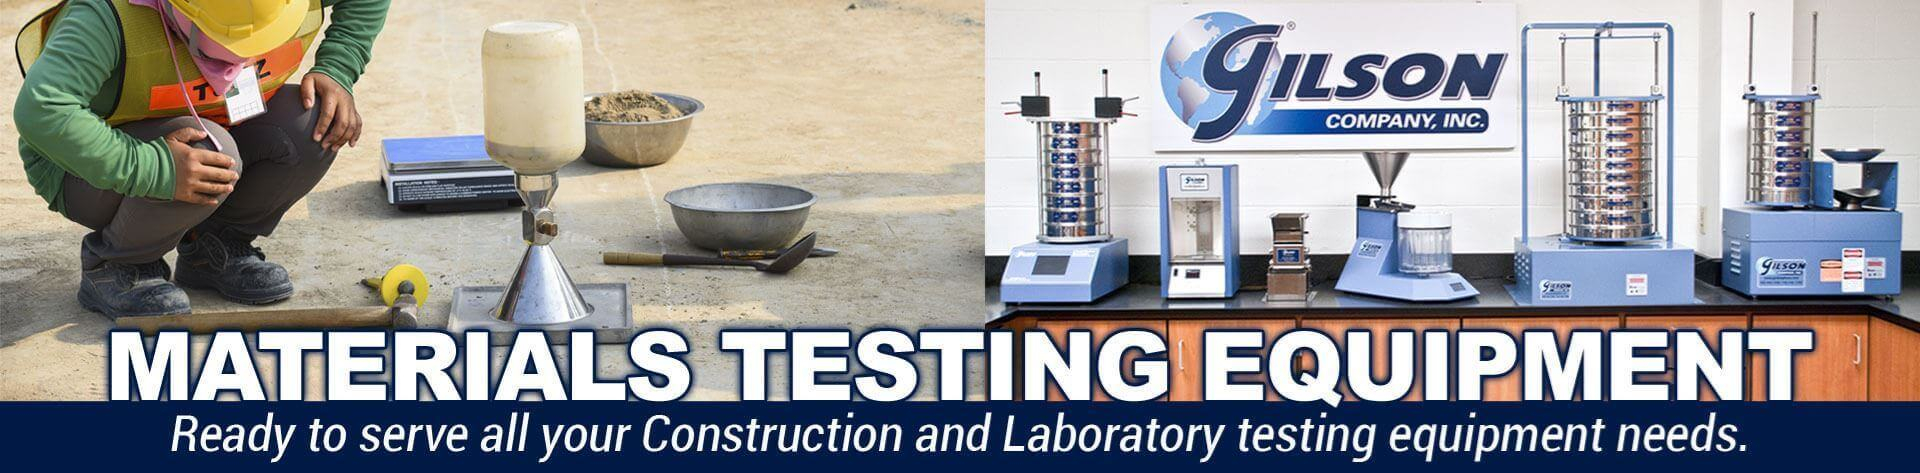 Materials Testing Equipment - Ready to serve all your construction and laboratory testing equipment needs.